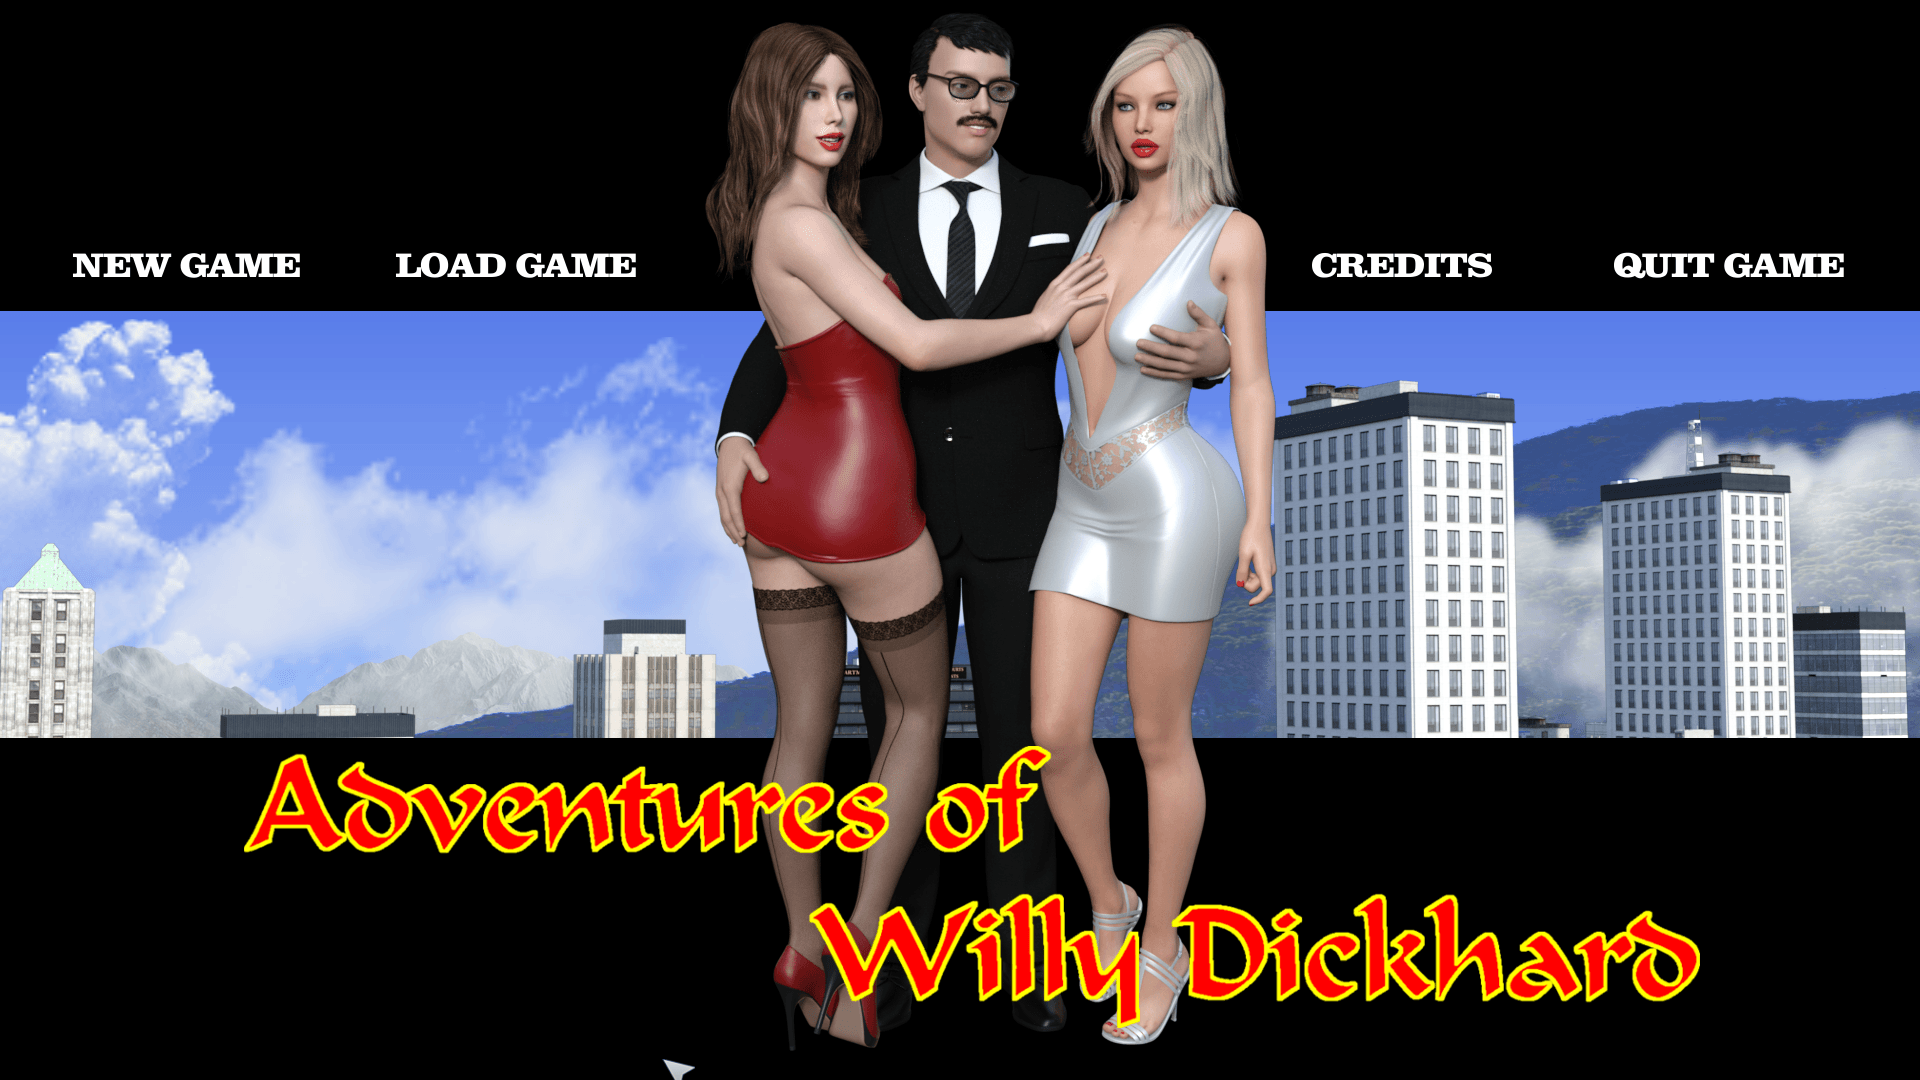 Adventure of Willy D – Version 0.44 - Free incest erotic game 1